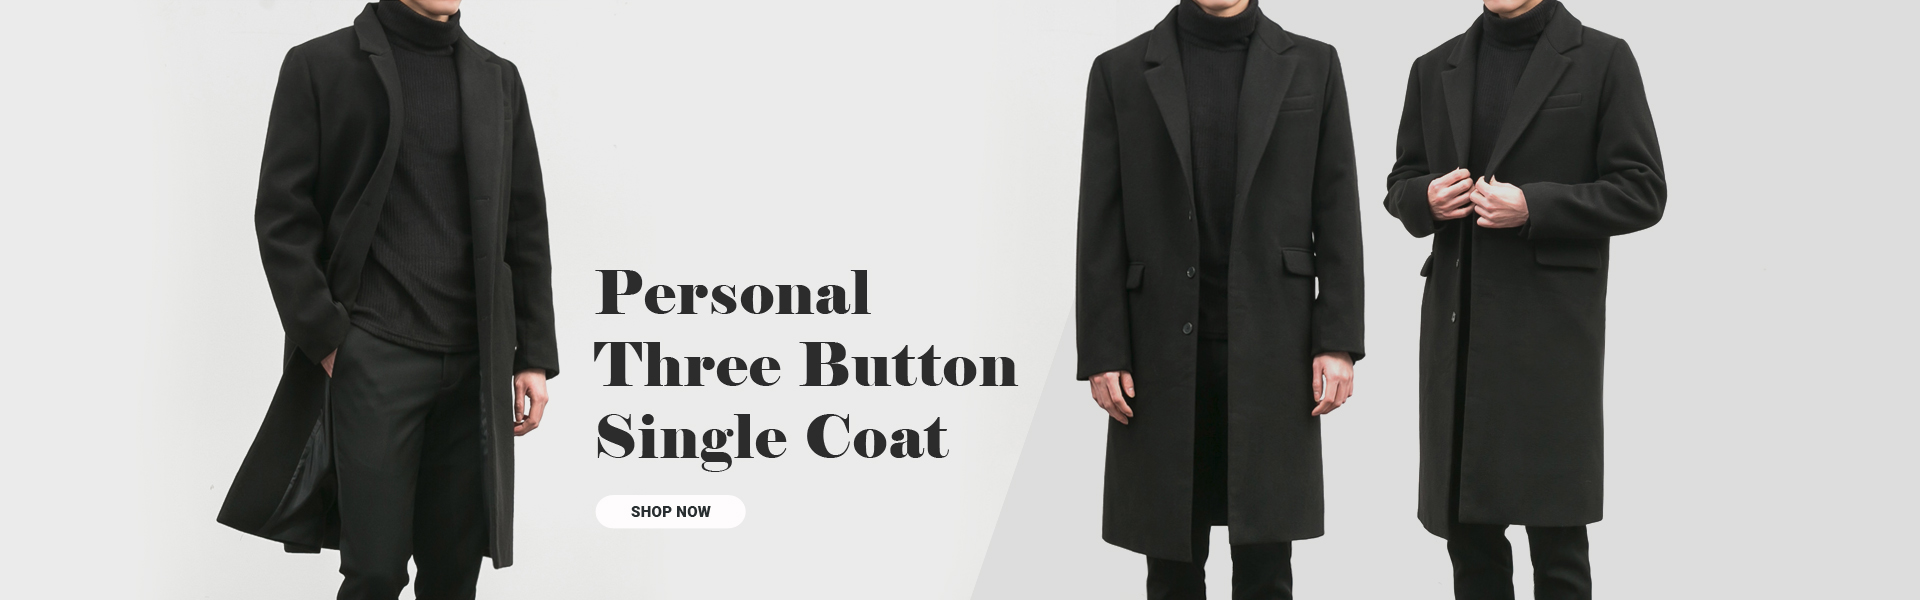 Personal Three Button Single Coat[BT1120][Ⅰ]